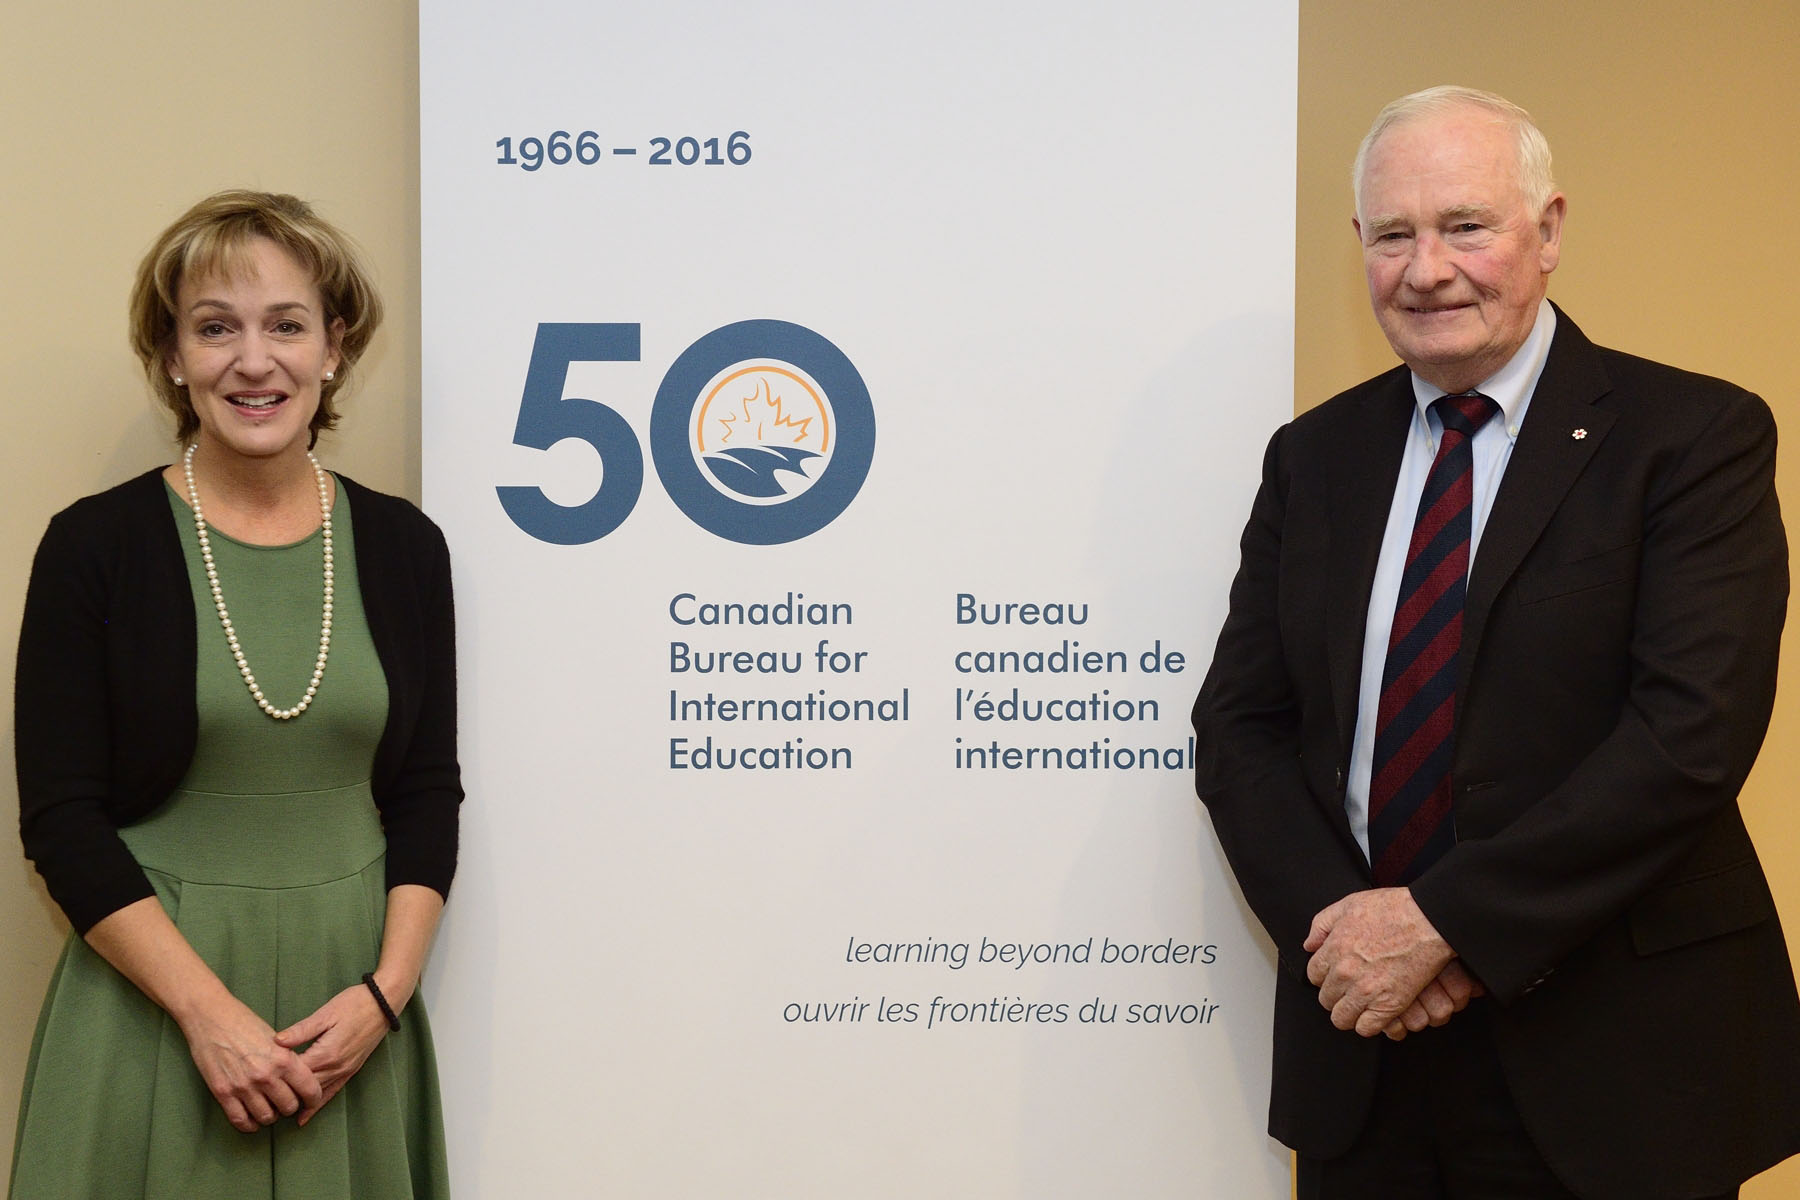 As patron of the Canadian Bureau for International Education (CBIE), the Governor General delivered the opening keynote address and engaged in a question period at the 50th CBIE Annual Conference held in Ottawa on November 14, 2016. On the left, Karen McBride, CBIE President and CEO.